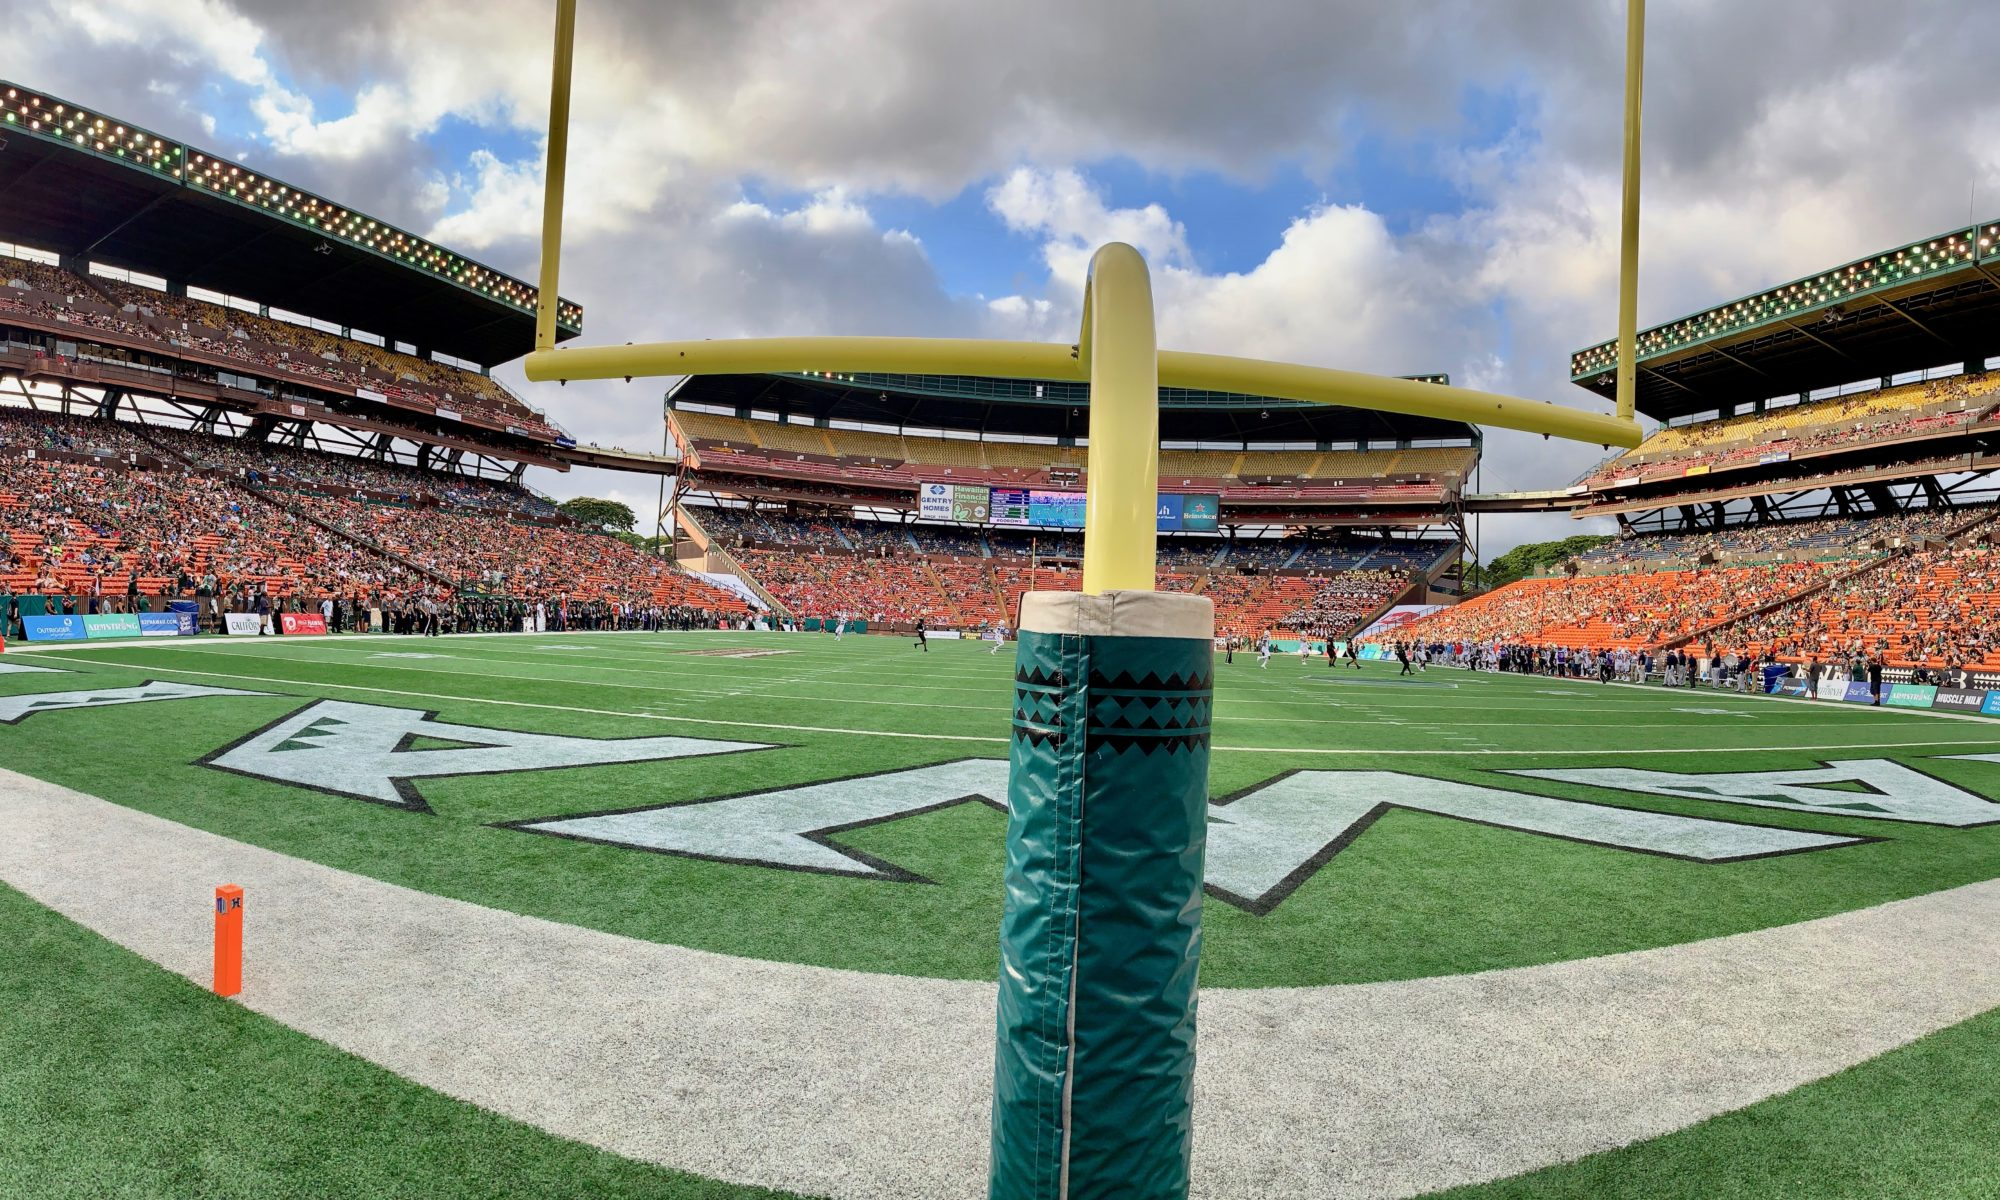 🚩🏟College Football Tour 🏈🏳️ 🌈 – Goal: To attend a